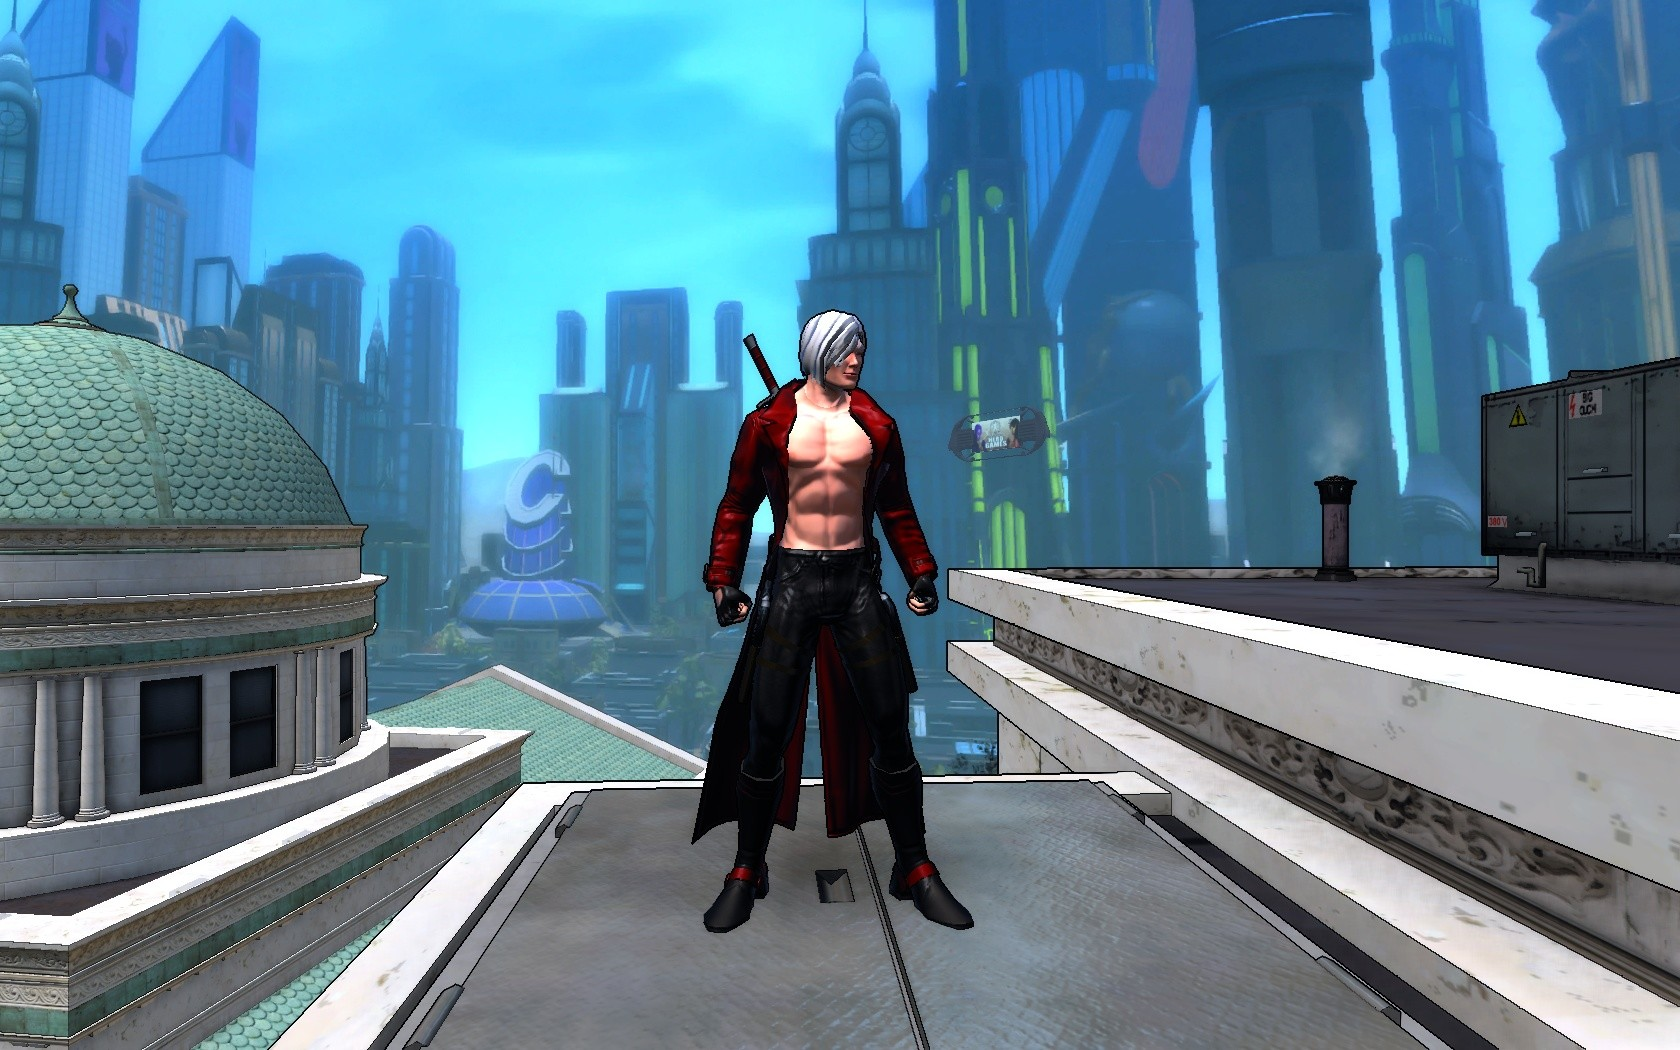 Champions Online - Dante from Devil May Cry (this is his DMC2 outfit) meets Champions Online